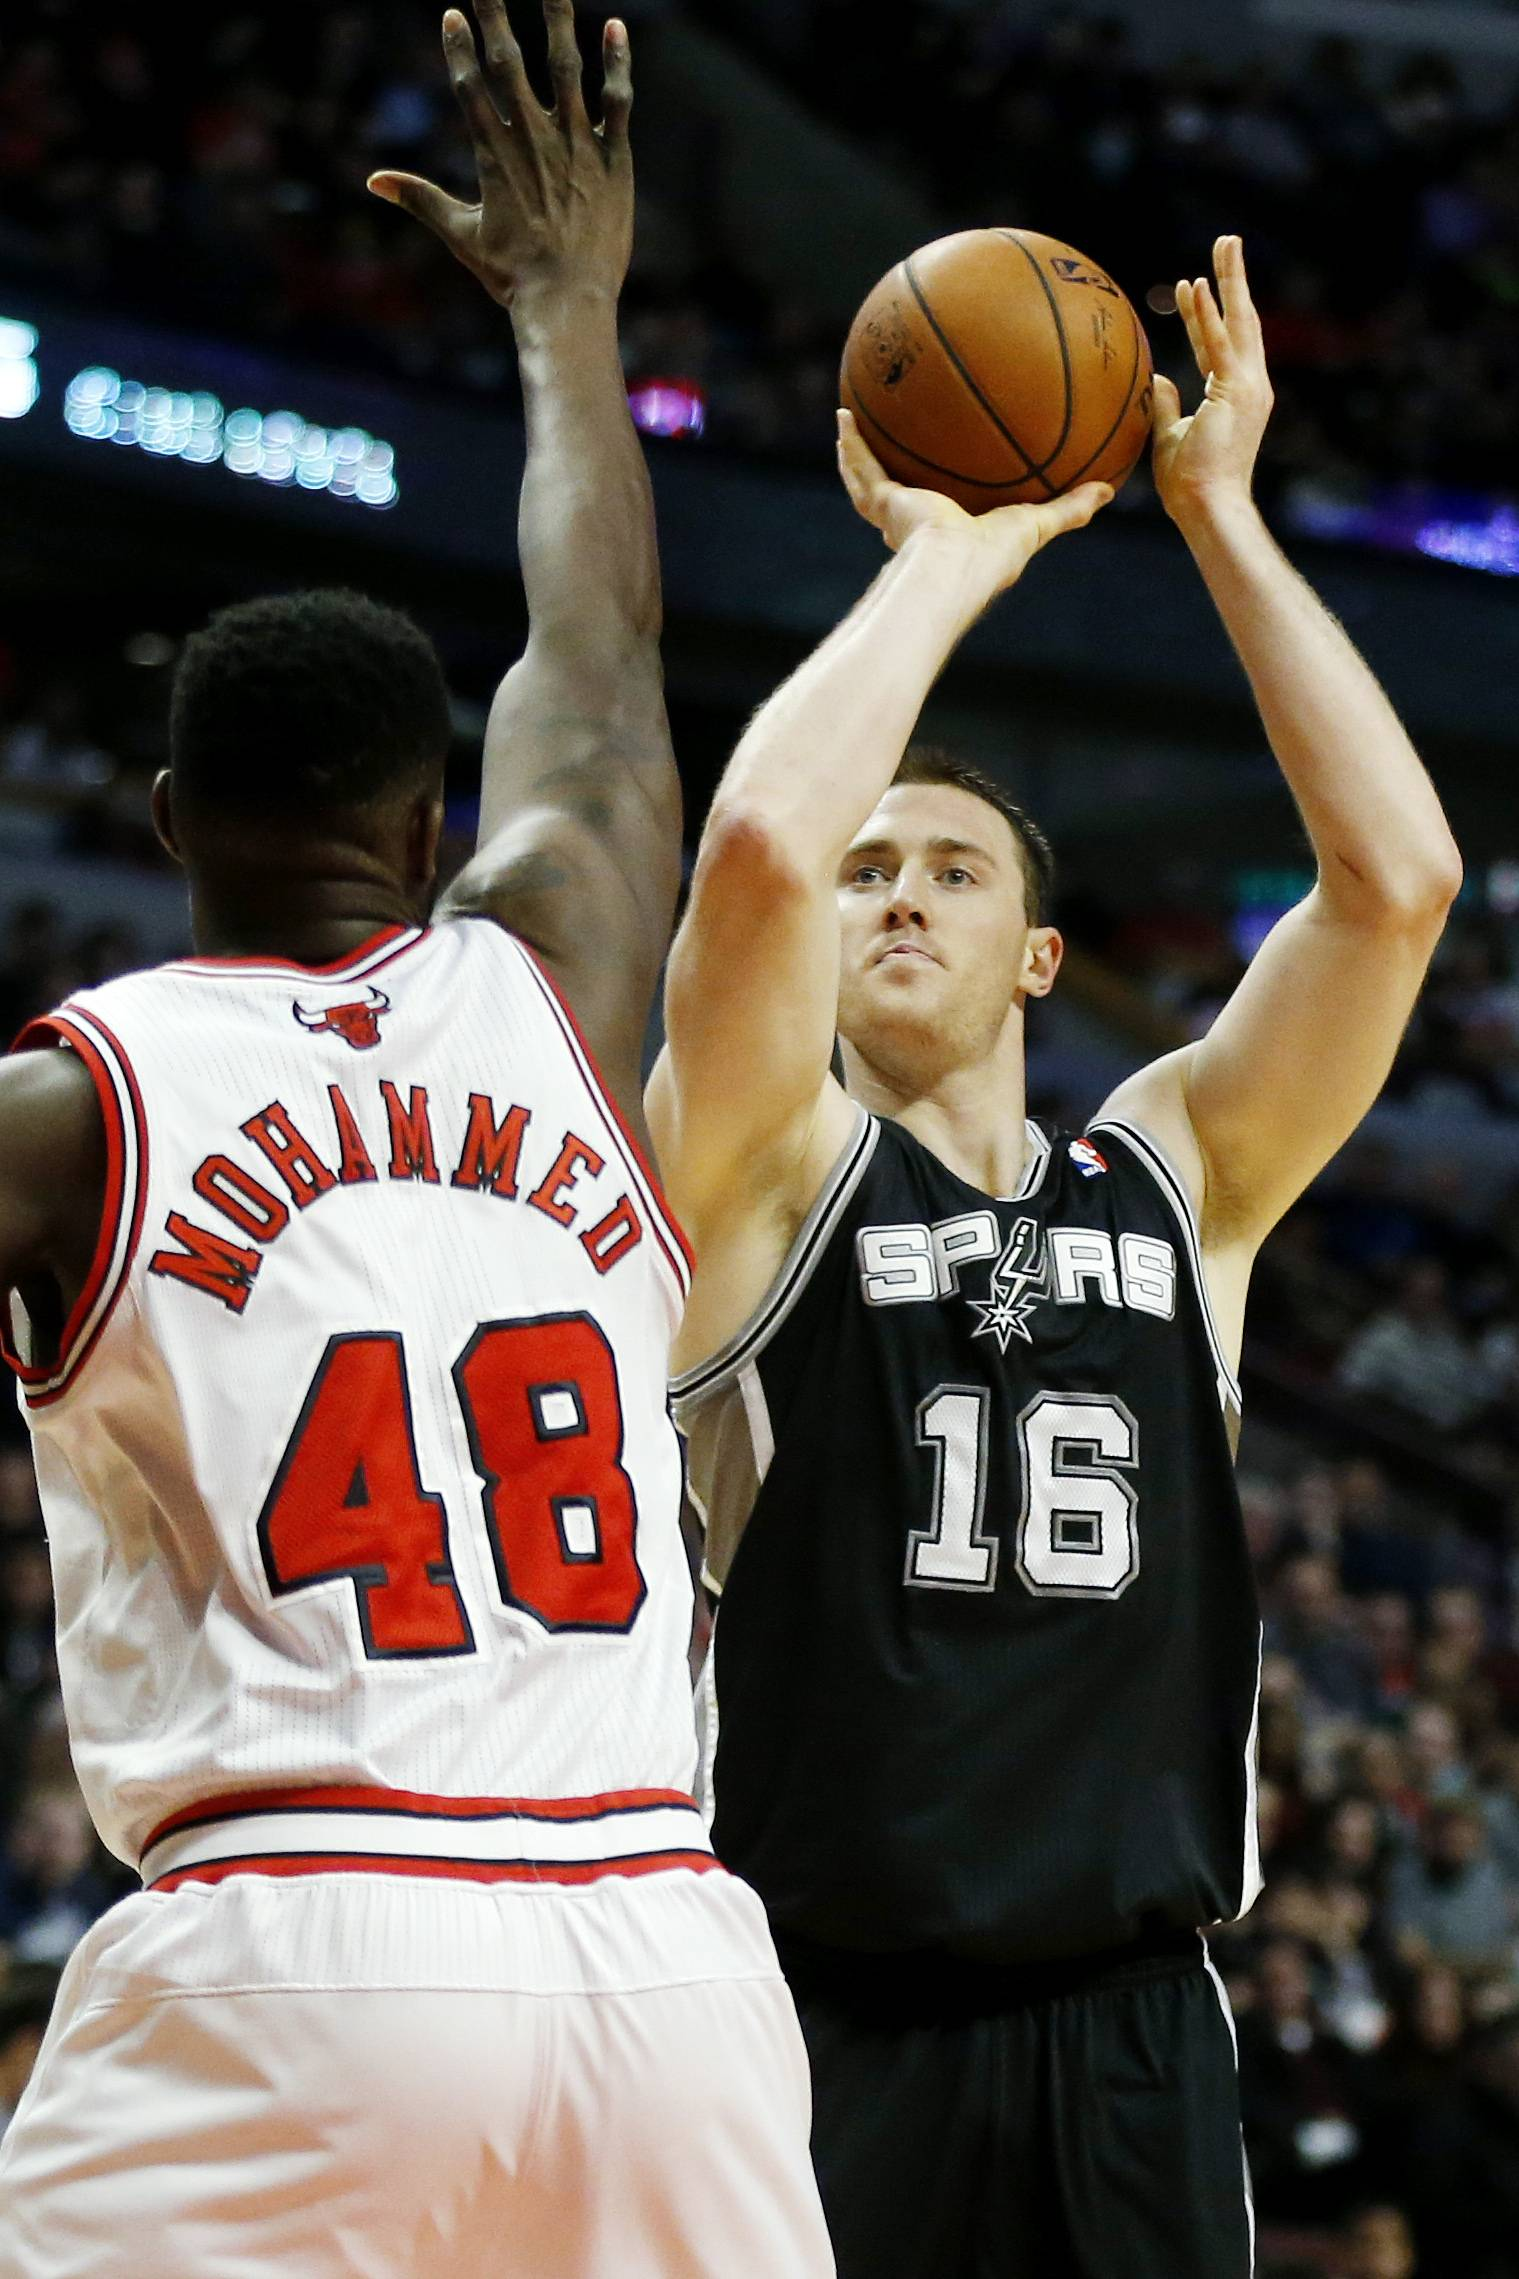 San Antonio Spurs power forward Aron Baynes (16) shoots over Chicago Bulls center Nazr Mohammed (48) during the first half of an NBA basketball game on Tuesday, March 11, 2014, in Chicago. The San Antonio Spurs defeated The Chicago Bulls 104-96.